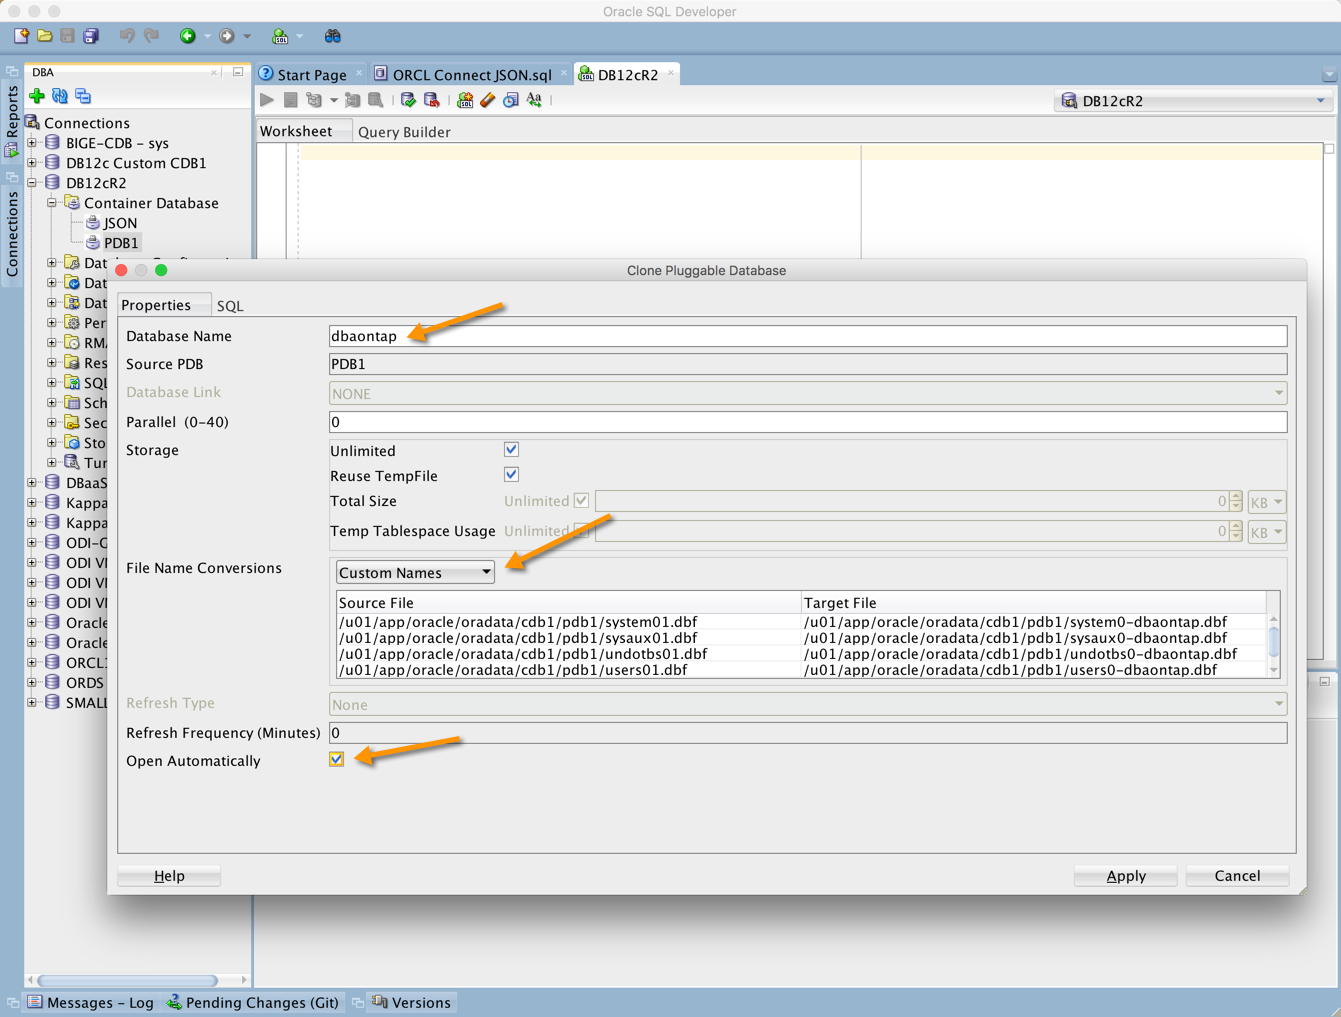 Use SQL Developer to Create a PDB - Database 12cR2 - dbaonTap